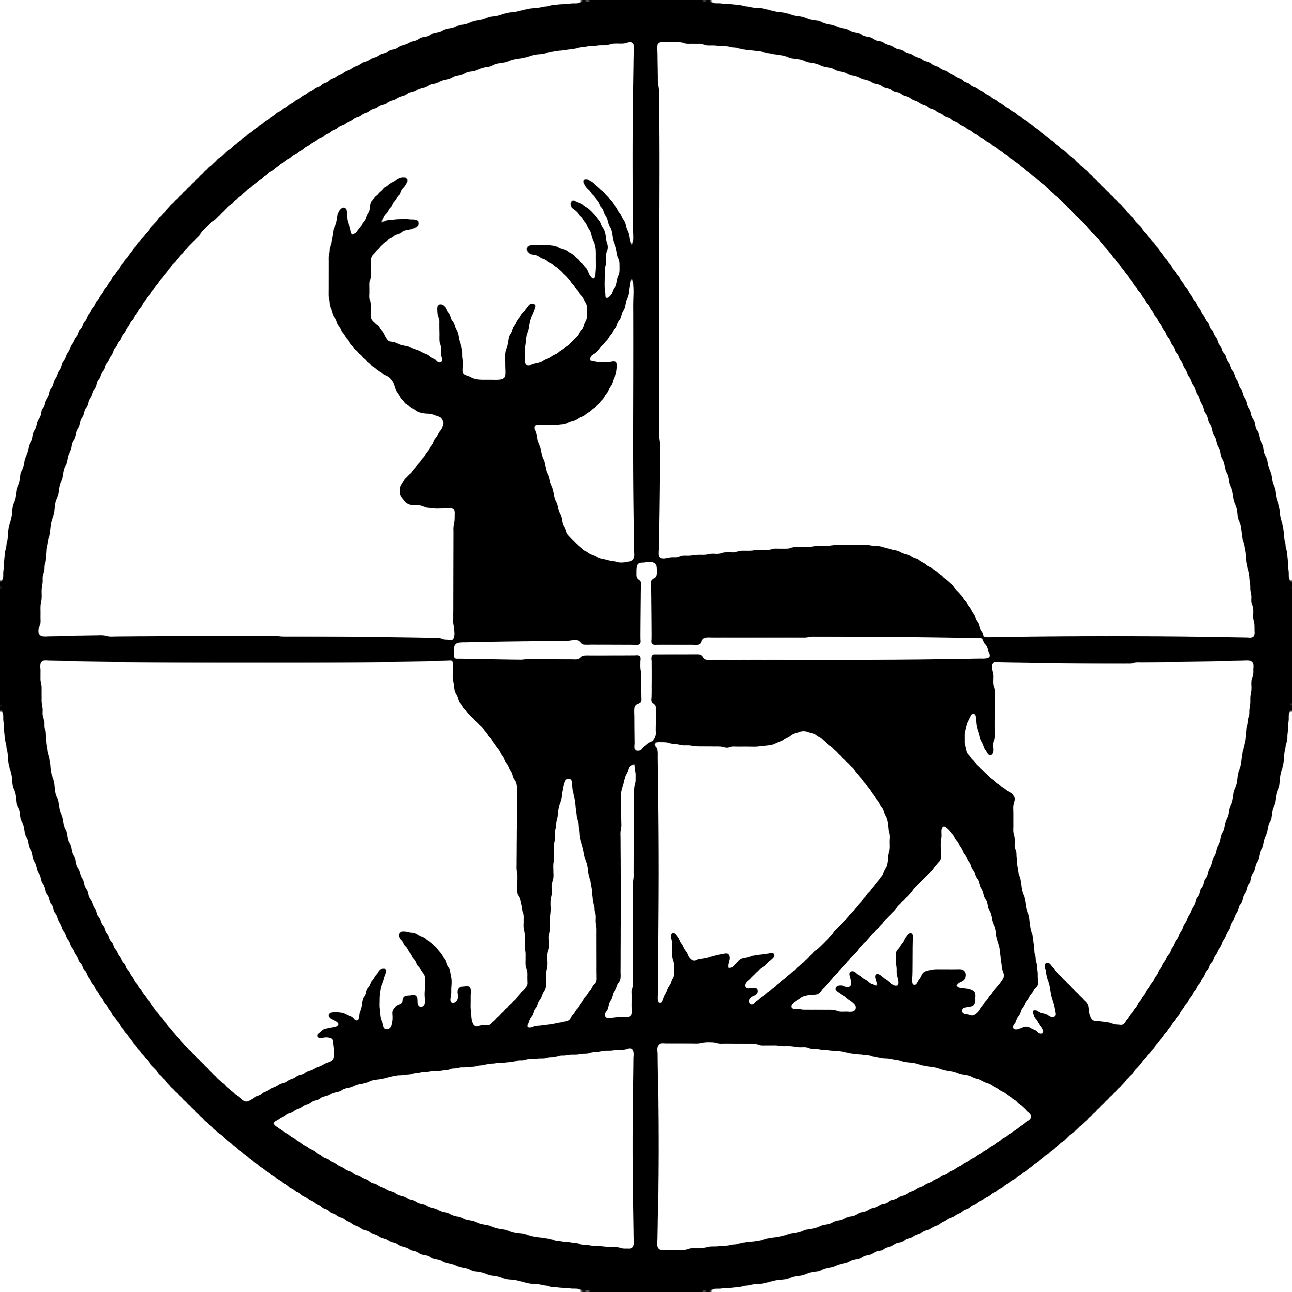 Free black and white clipart images deer hunting. Silhouette vinyl decal